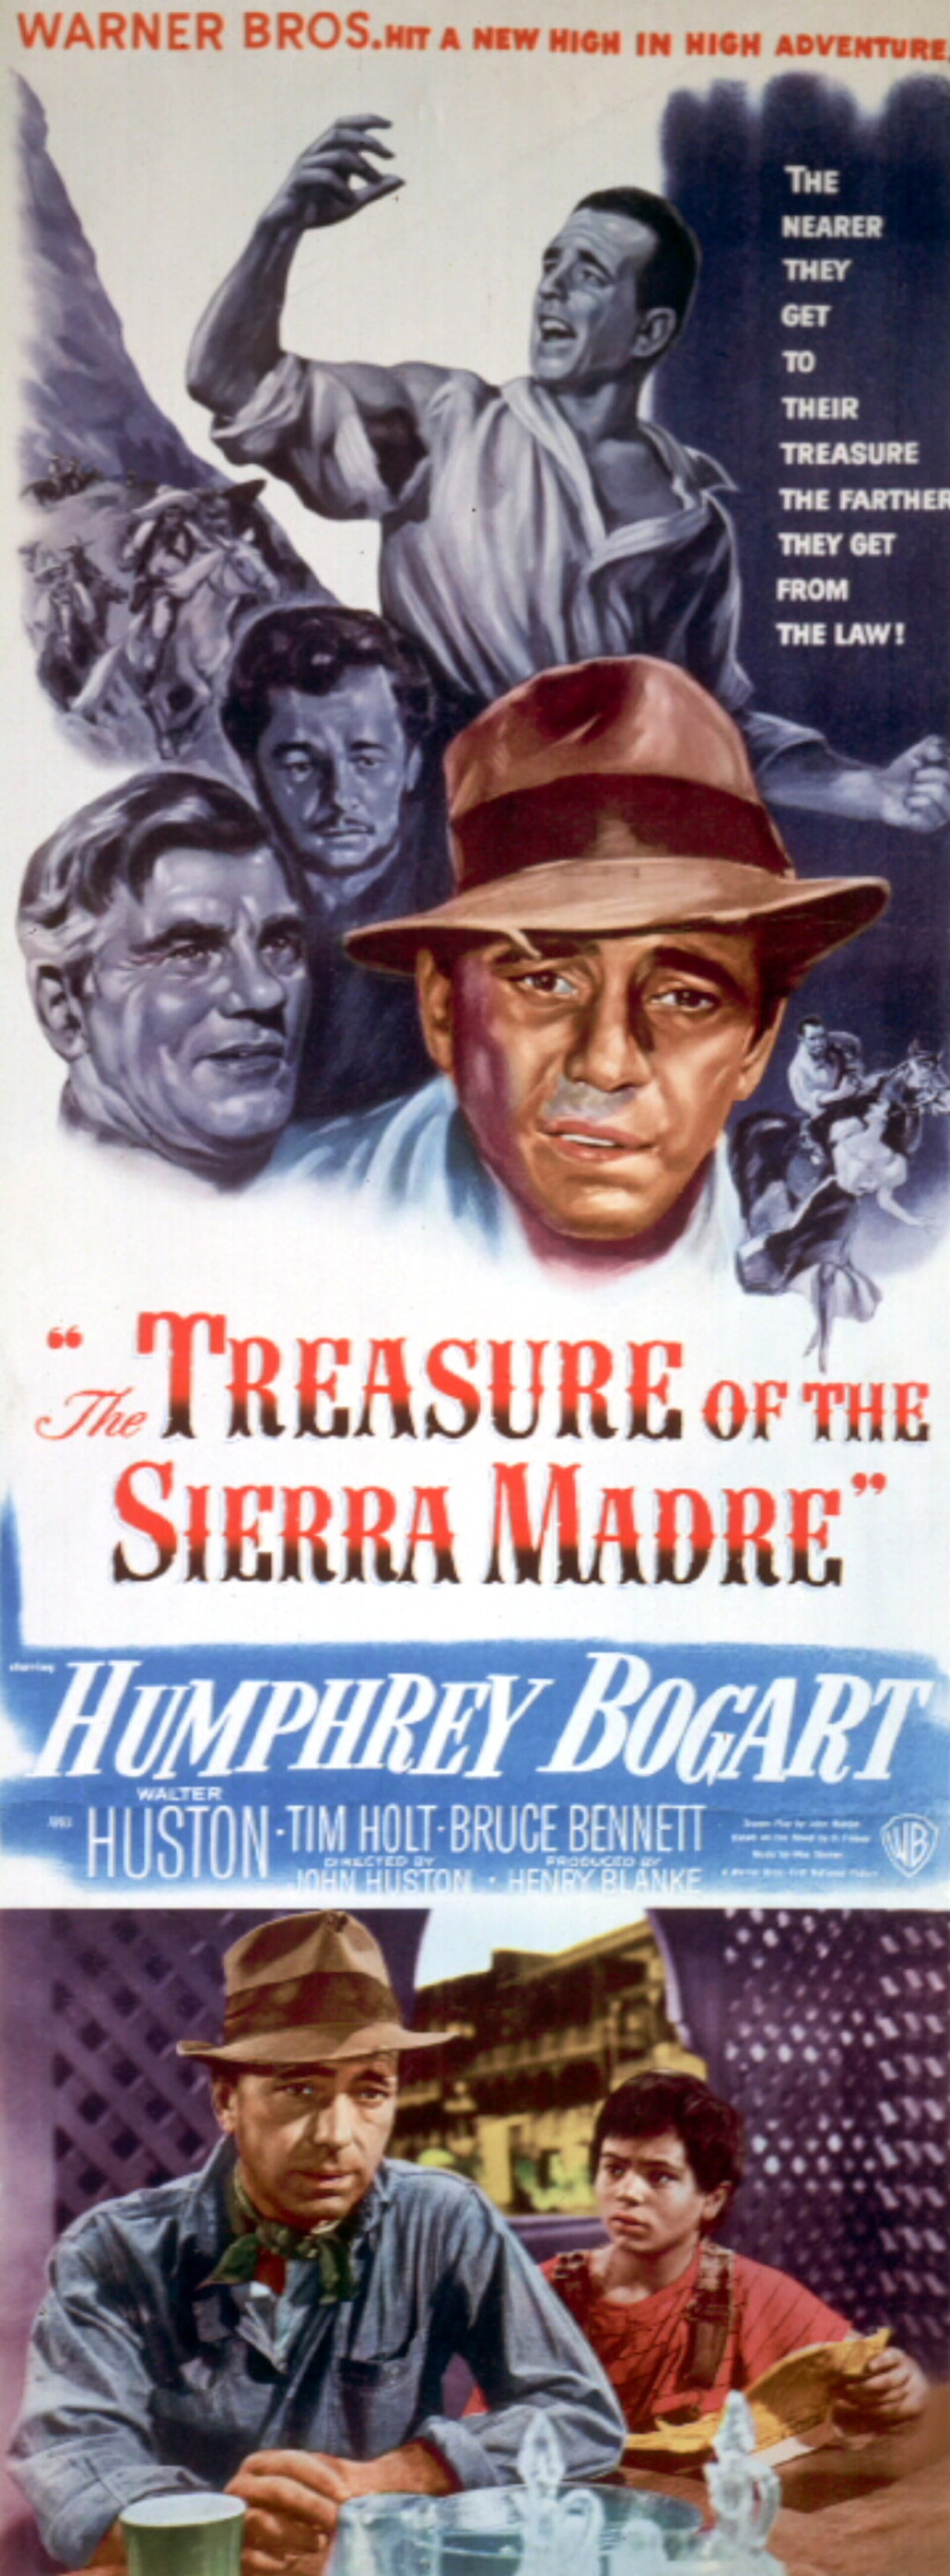 The Treaure of the Sierra Madre - Poster 6